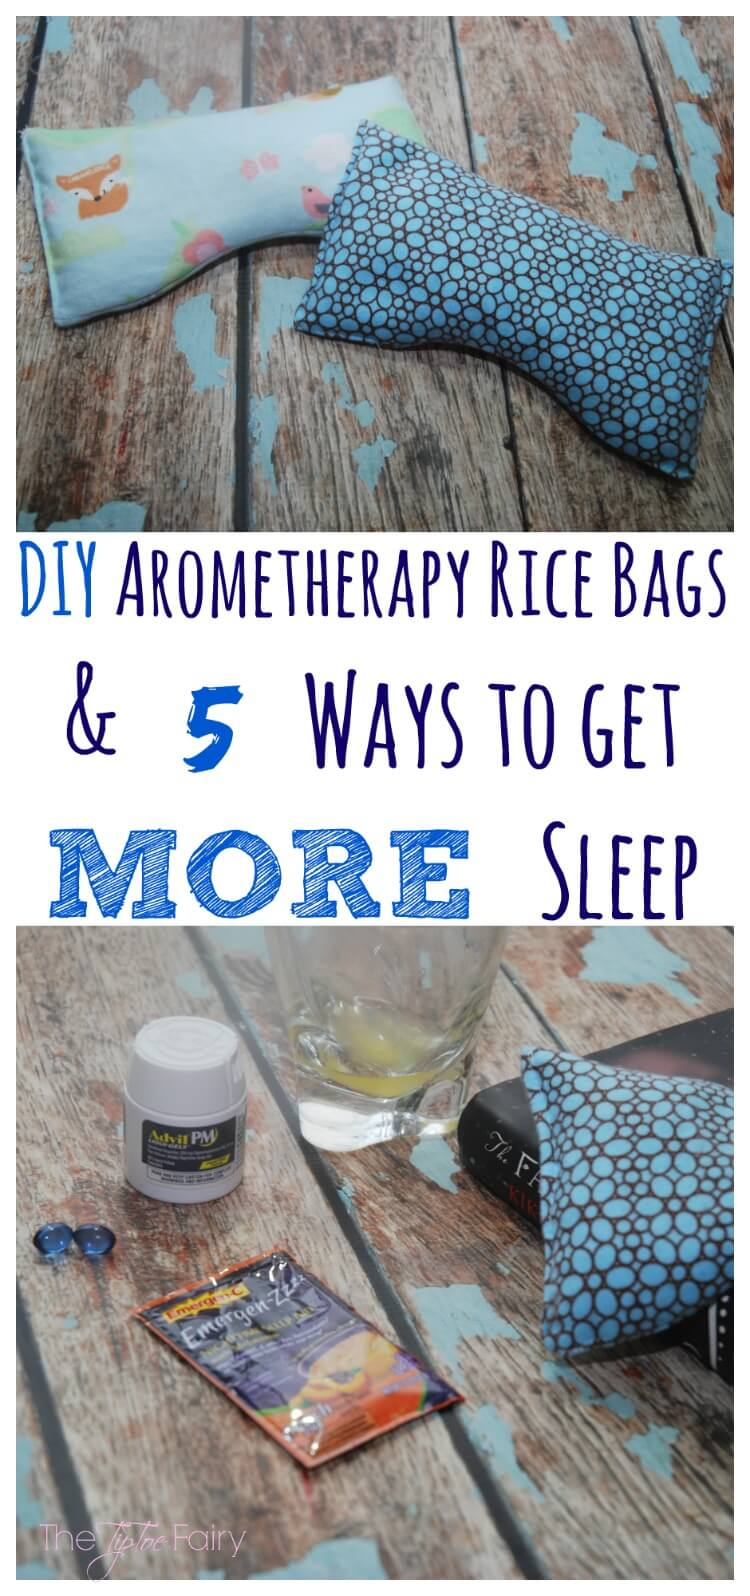 #FindRestEasy with FIVE ways to get a goodnight's sleep w/ a #DIY Eye Pillow tutorial #craft AD